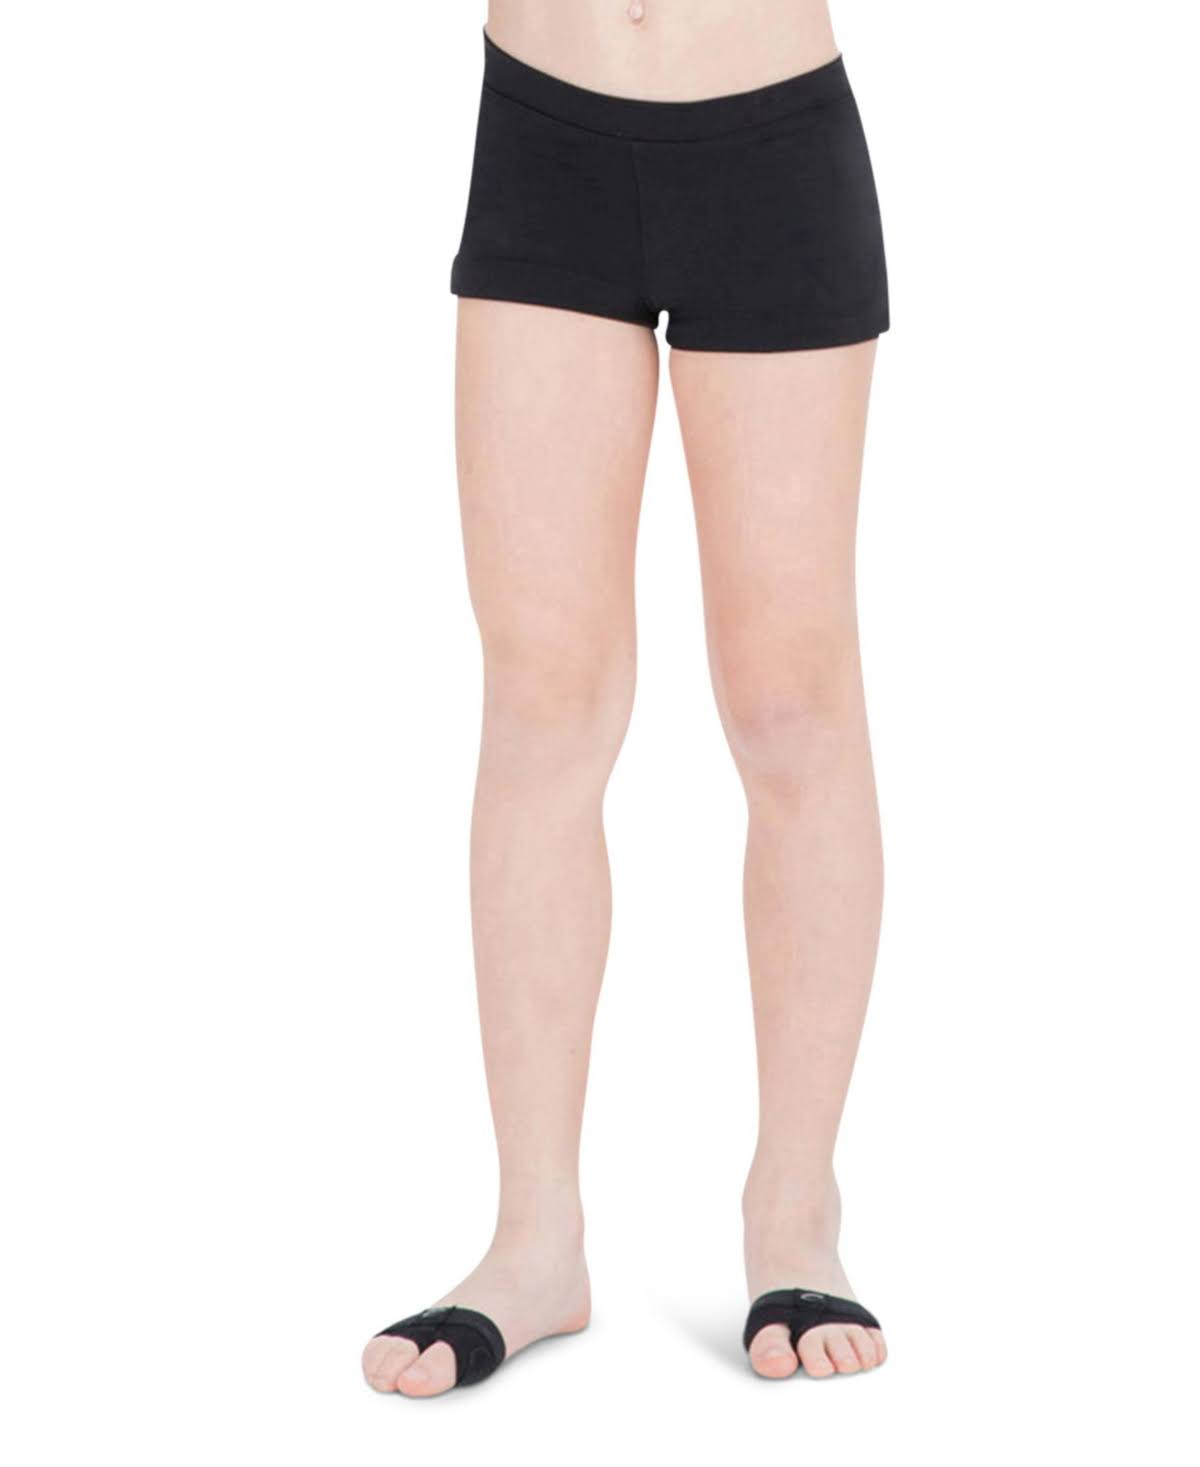 Capezio Girls' Boy Cut Low Rise Short - Black